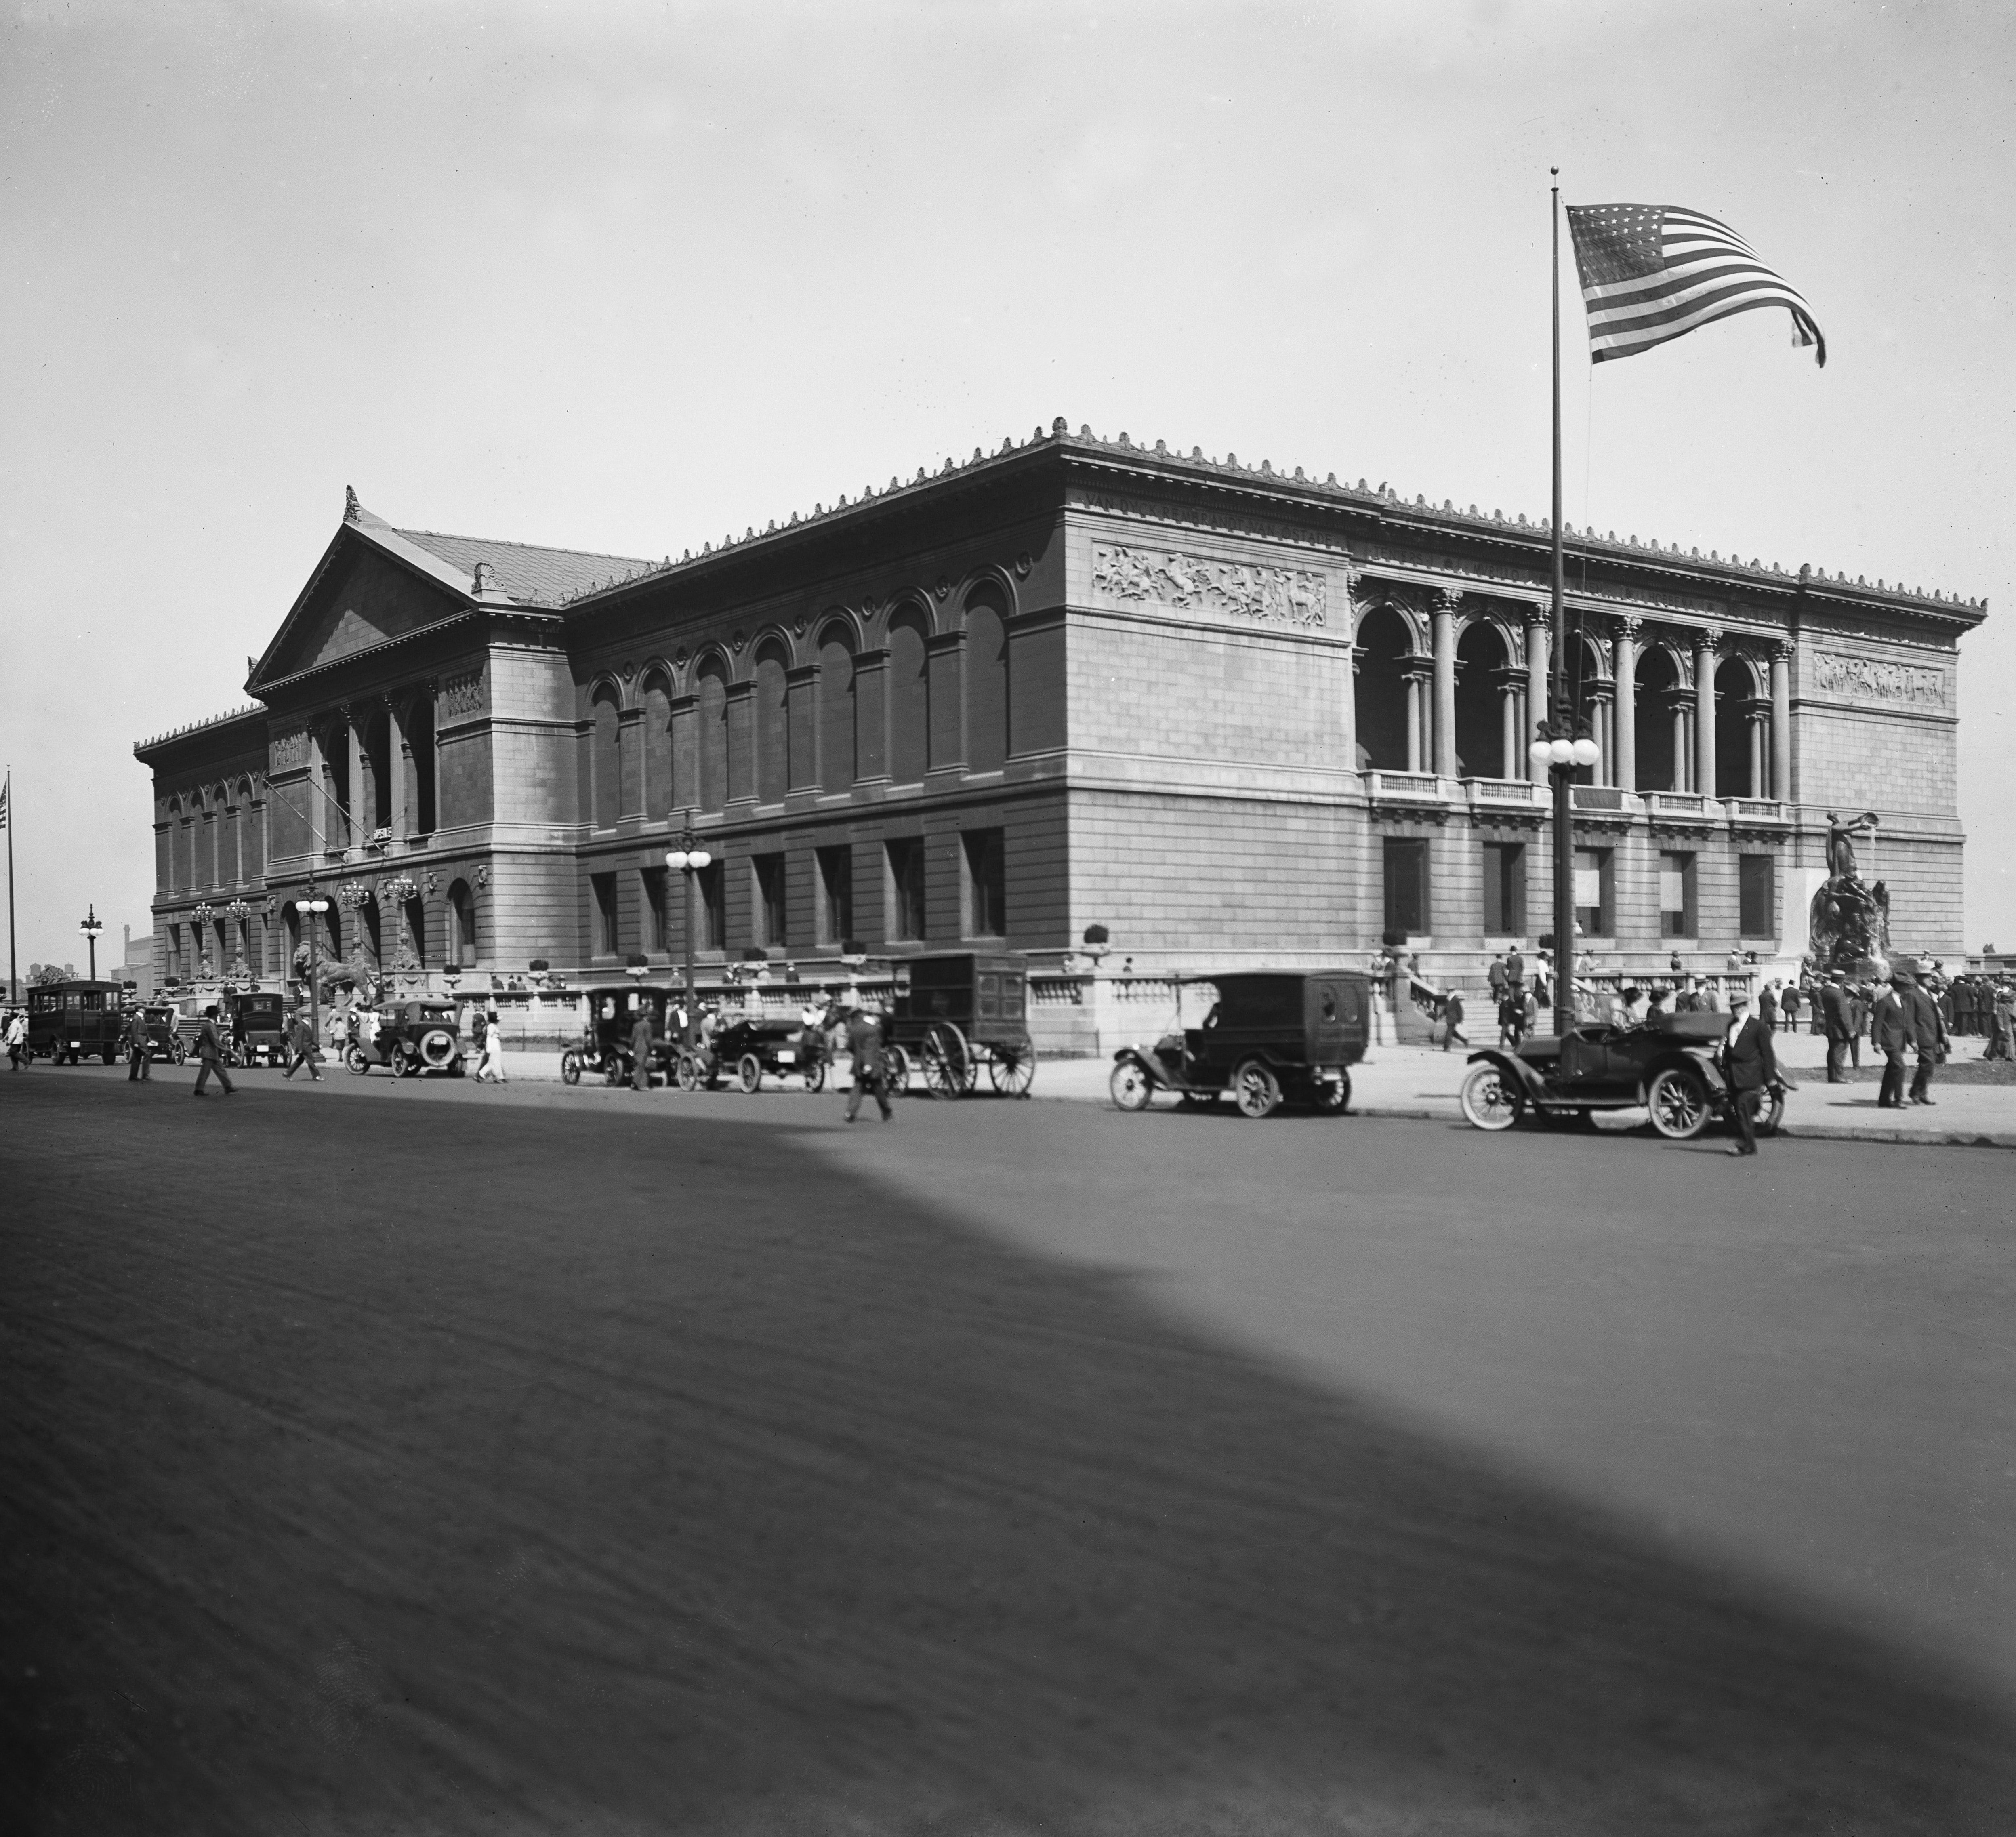 Archival image of an American flag raised in front of the Art Institute of Chicago Michigan Ave. entrace